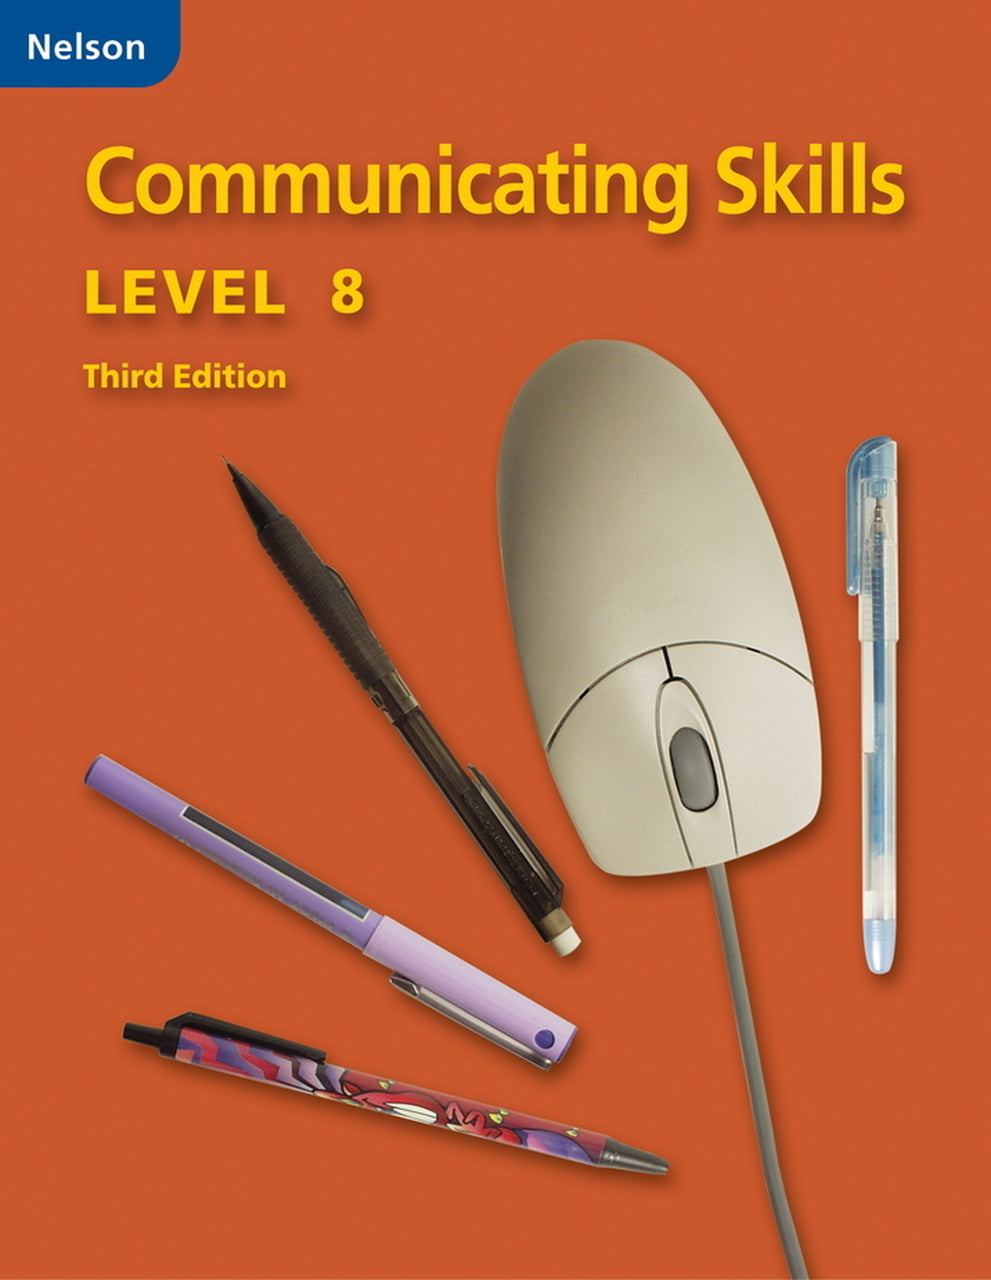 Communicating Skills 8